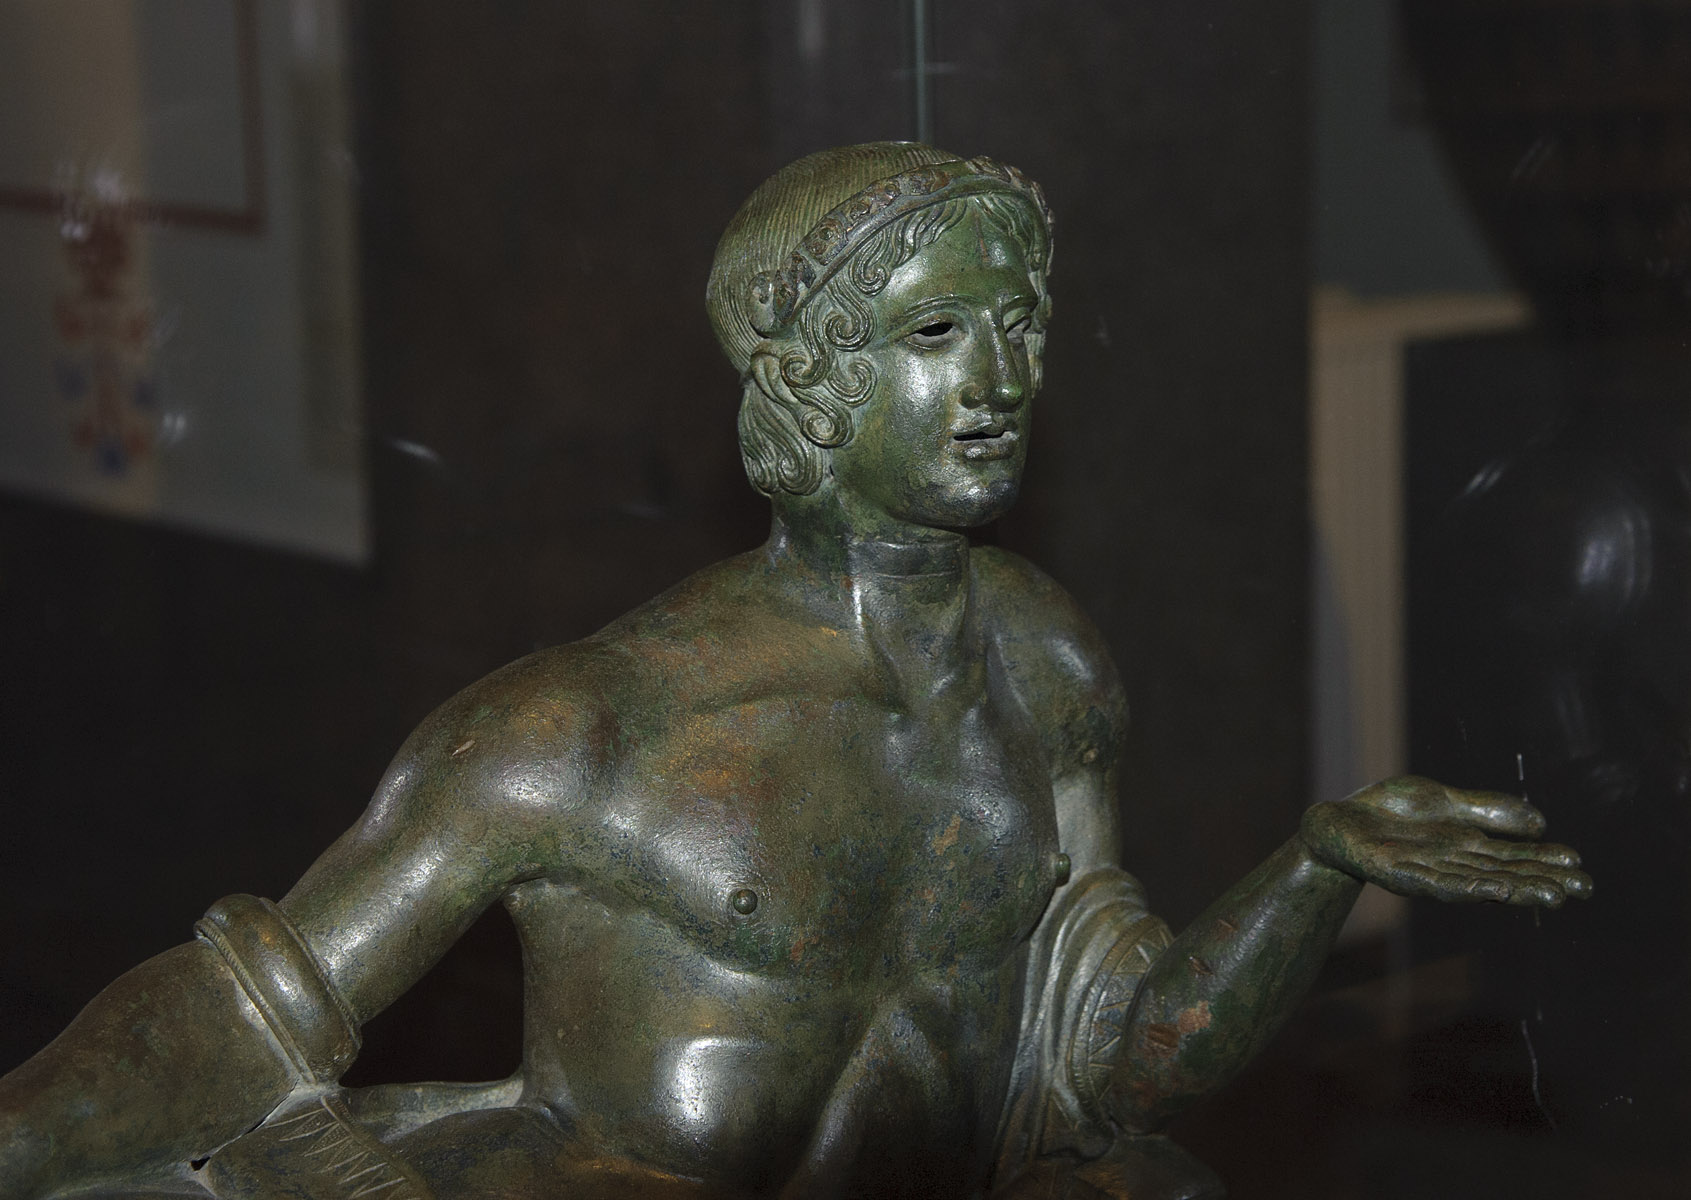 Reclining youth (close-up). Lid of cinerary urn. Bronze. Mid-4th century BCE. Inv. No. B 485. Saint Petersburg, The State Hermitage Museum